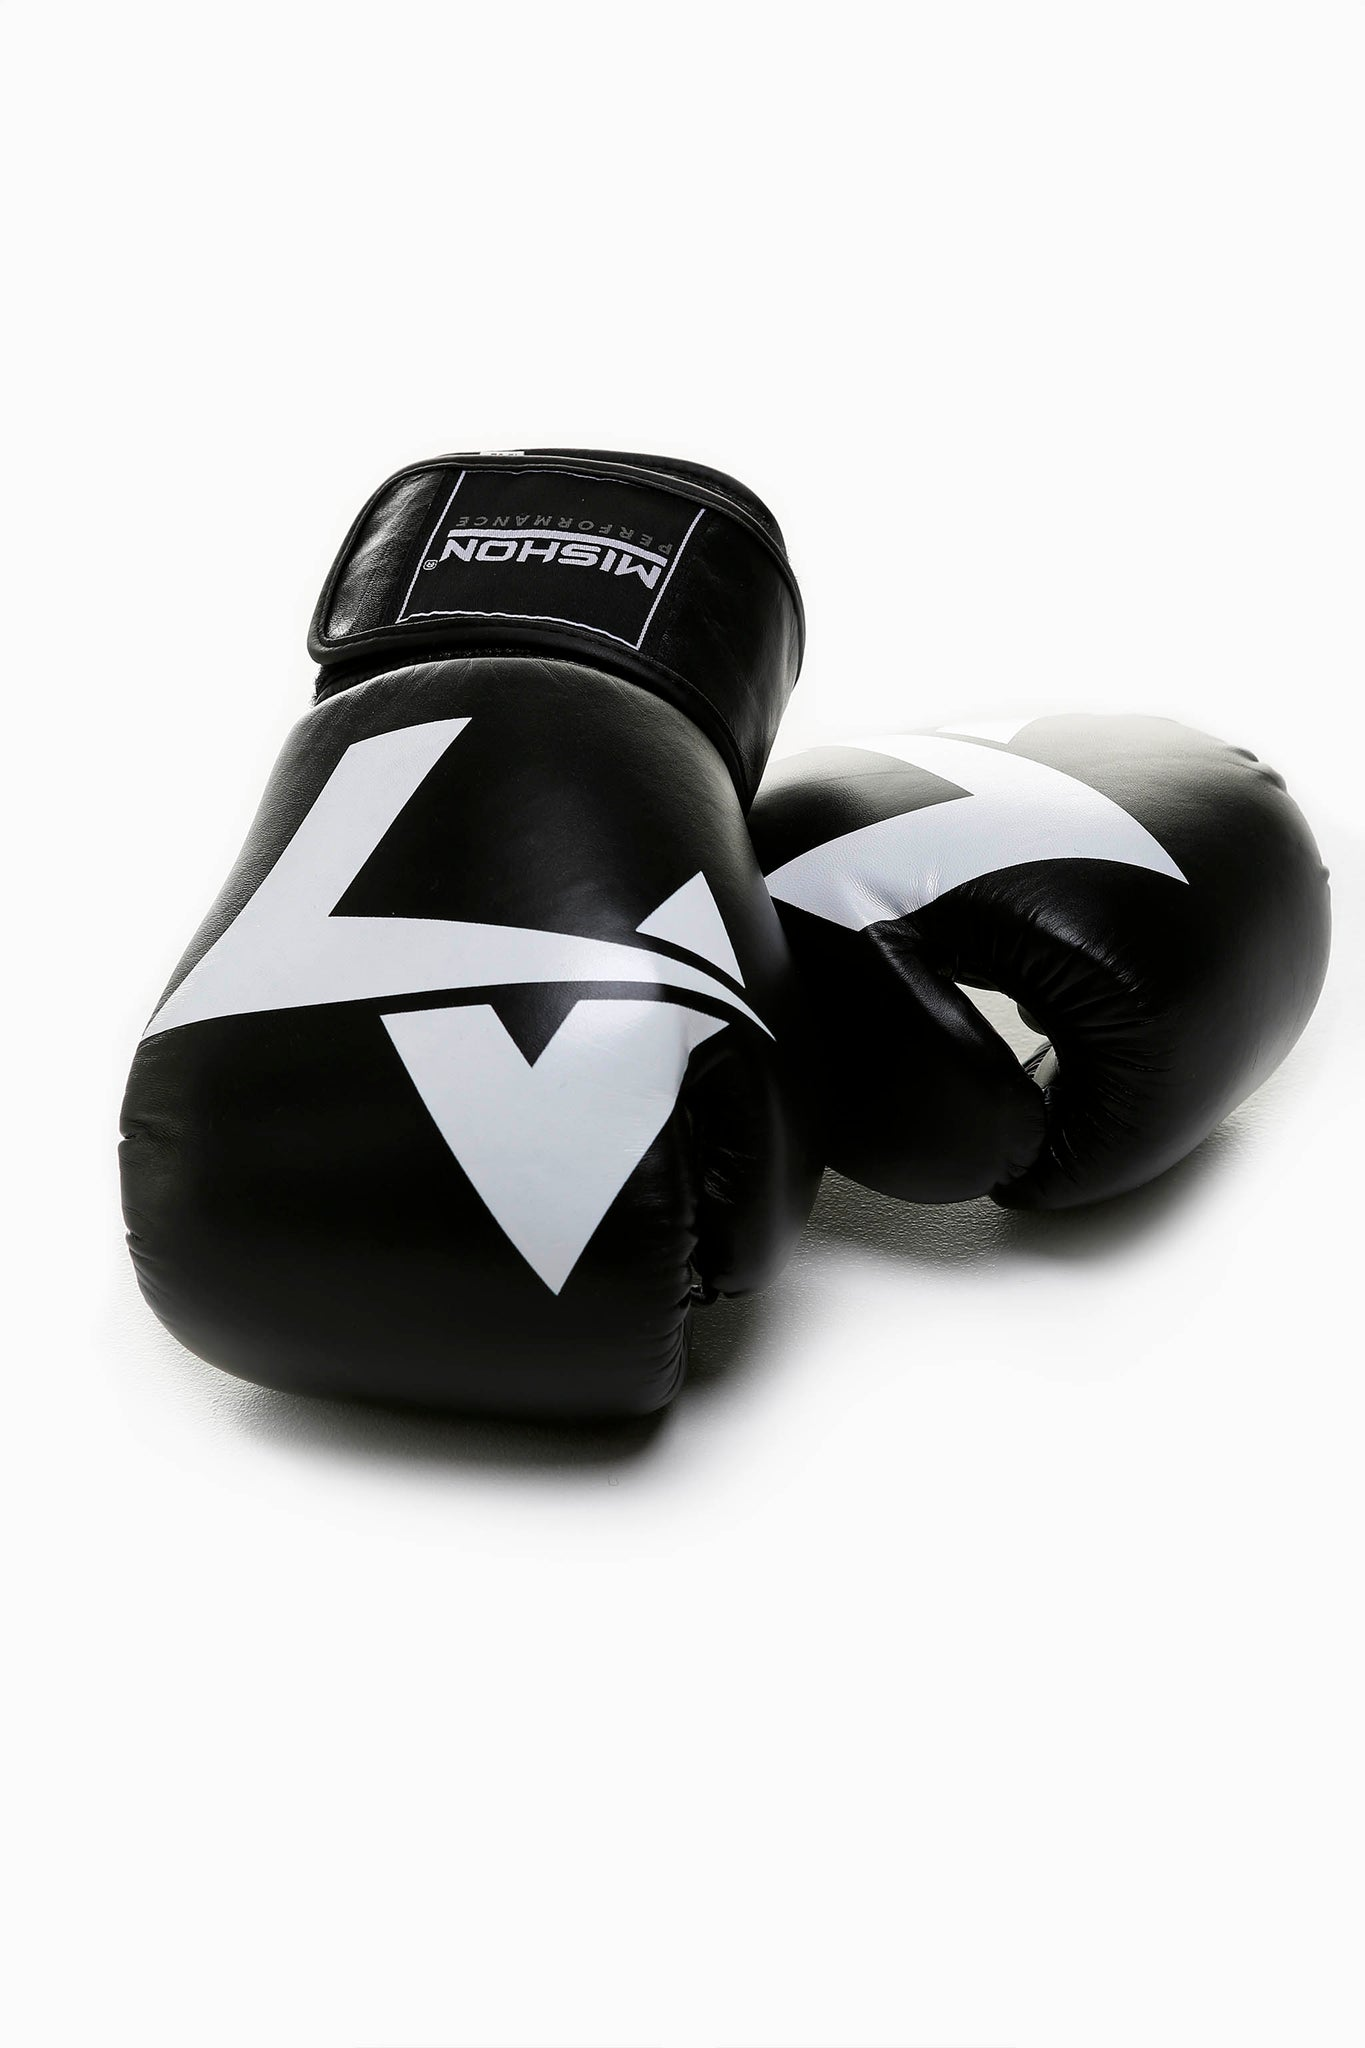 IIEVA Leather Boxing Gloves - Black